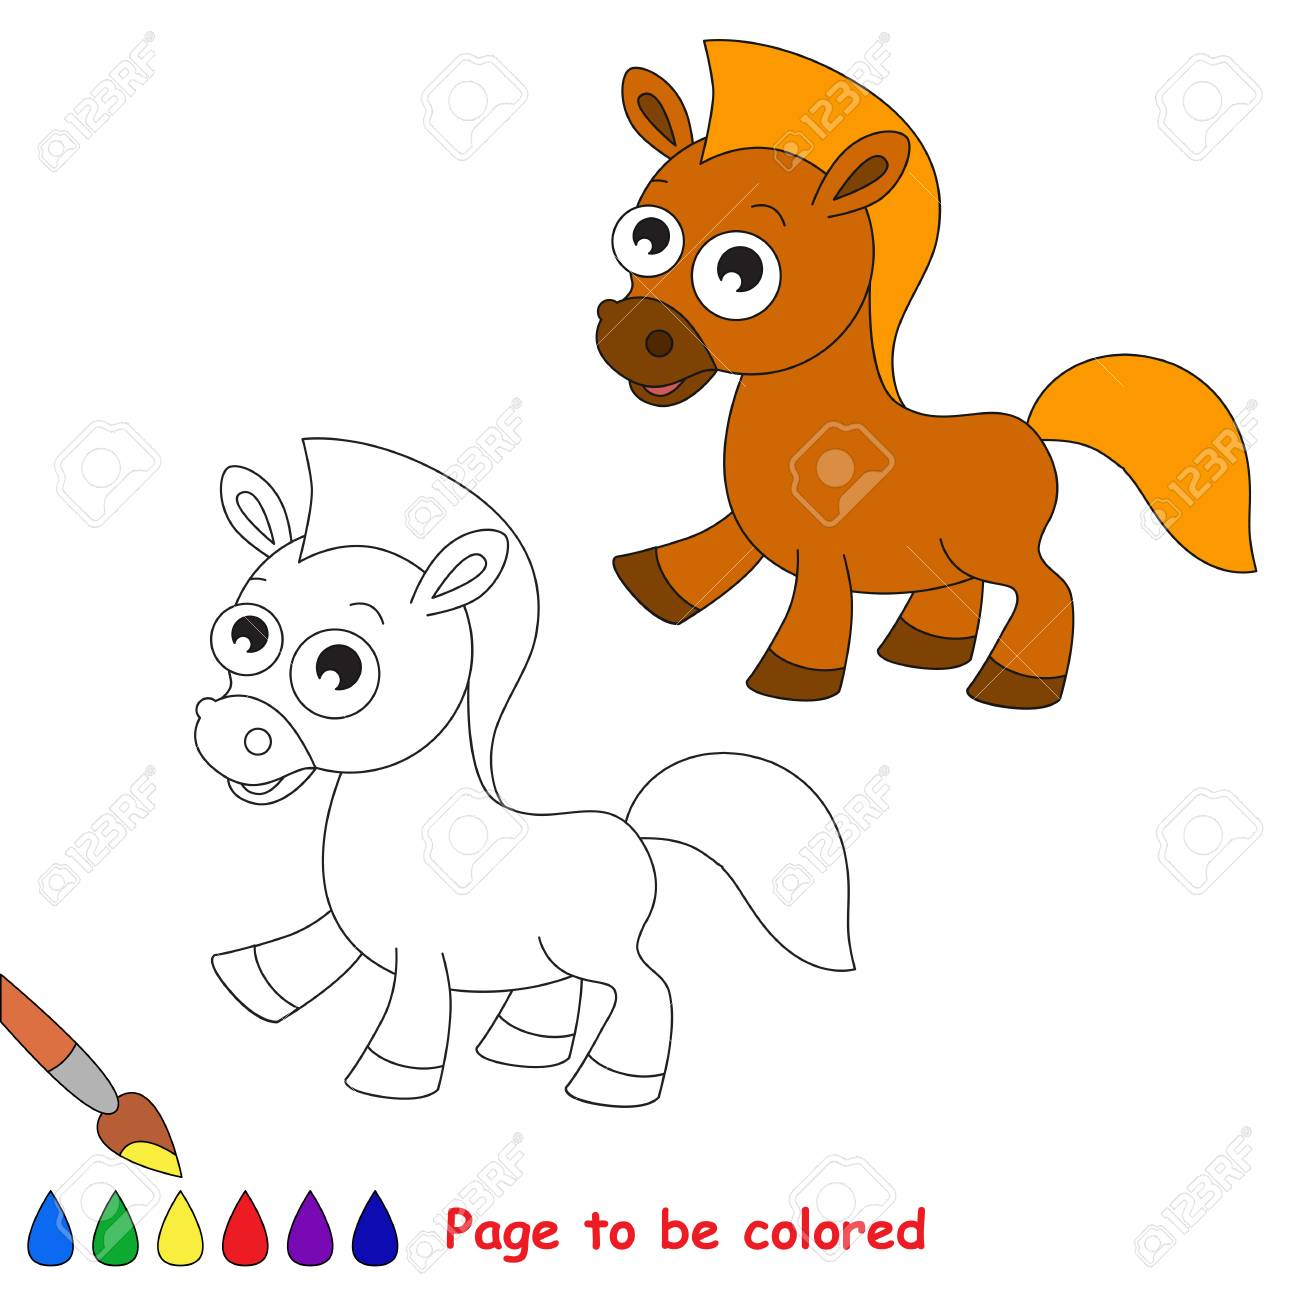 Horses in to be colored. Coloring book for children. Visual game.